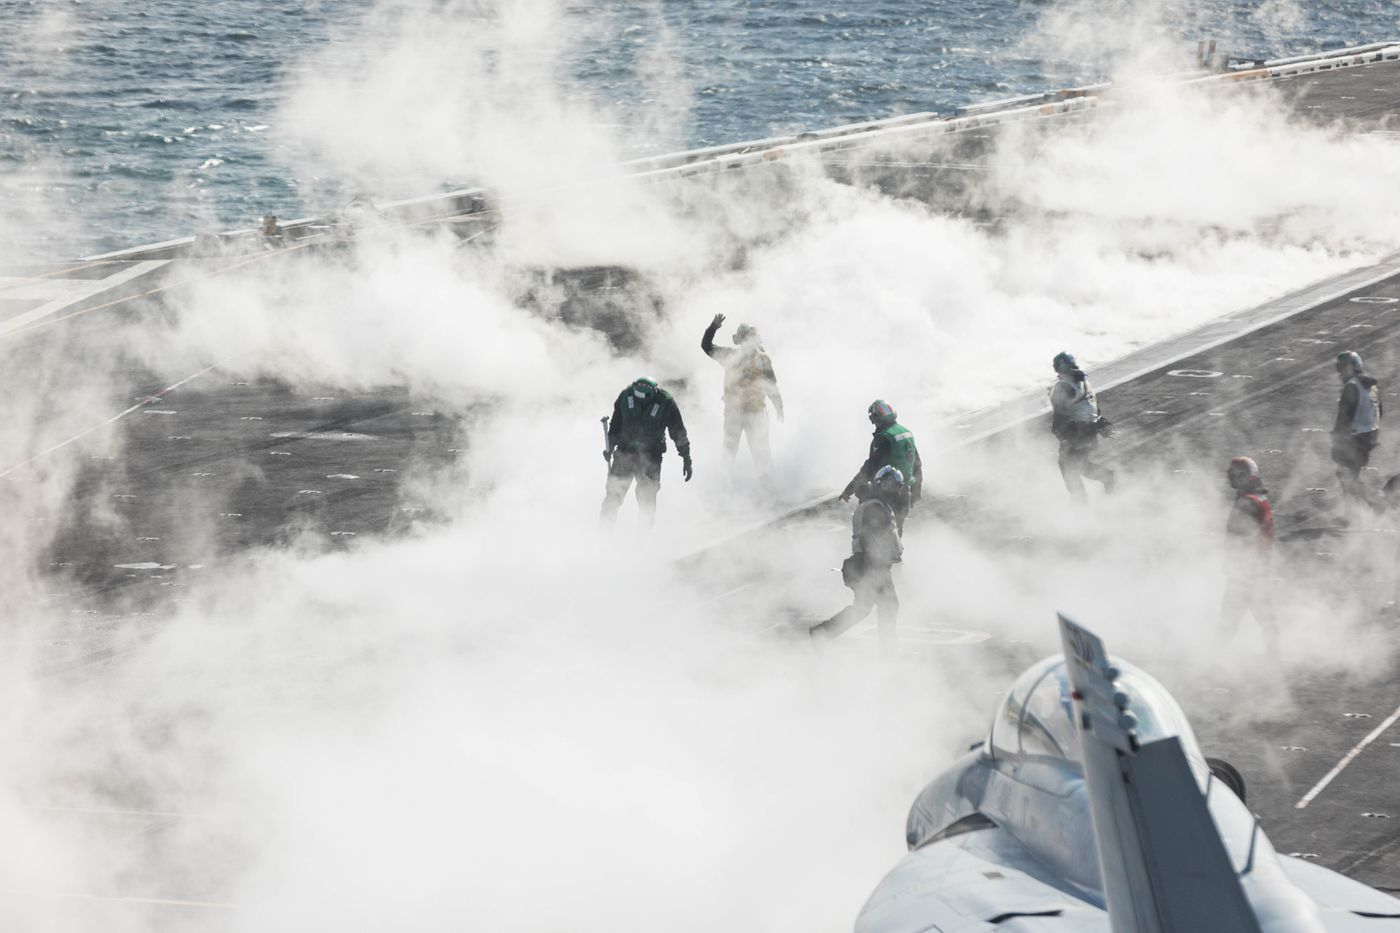 Flight deck crews walk through steam left over from the launch of a F/A-18 Super Hornet on Wednesday from the USS Theodore Roosevelt Nimitz-class aircraft carrier in the Gulf of Alaska south of Seward. The fighter jets are launched with the help of a steam-powered catapult, which can accelerate a 66,000 pound aircraft like a fully-loaded Super Hornet from 0-150 mph in under three seconds. (Loren Holmes / ADN)